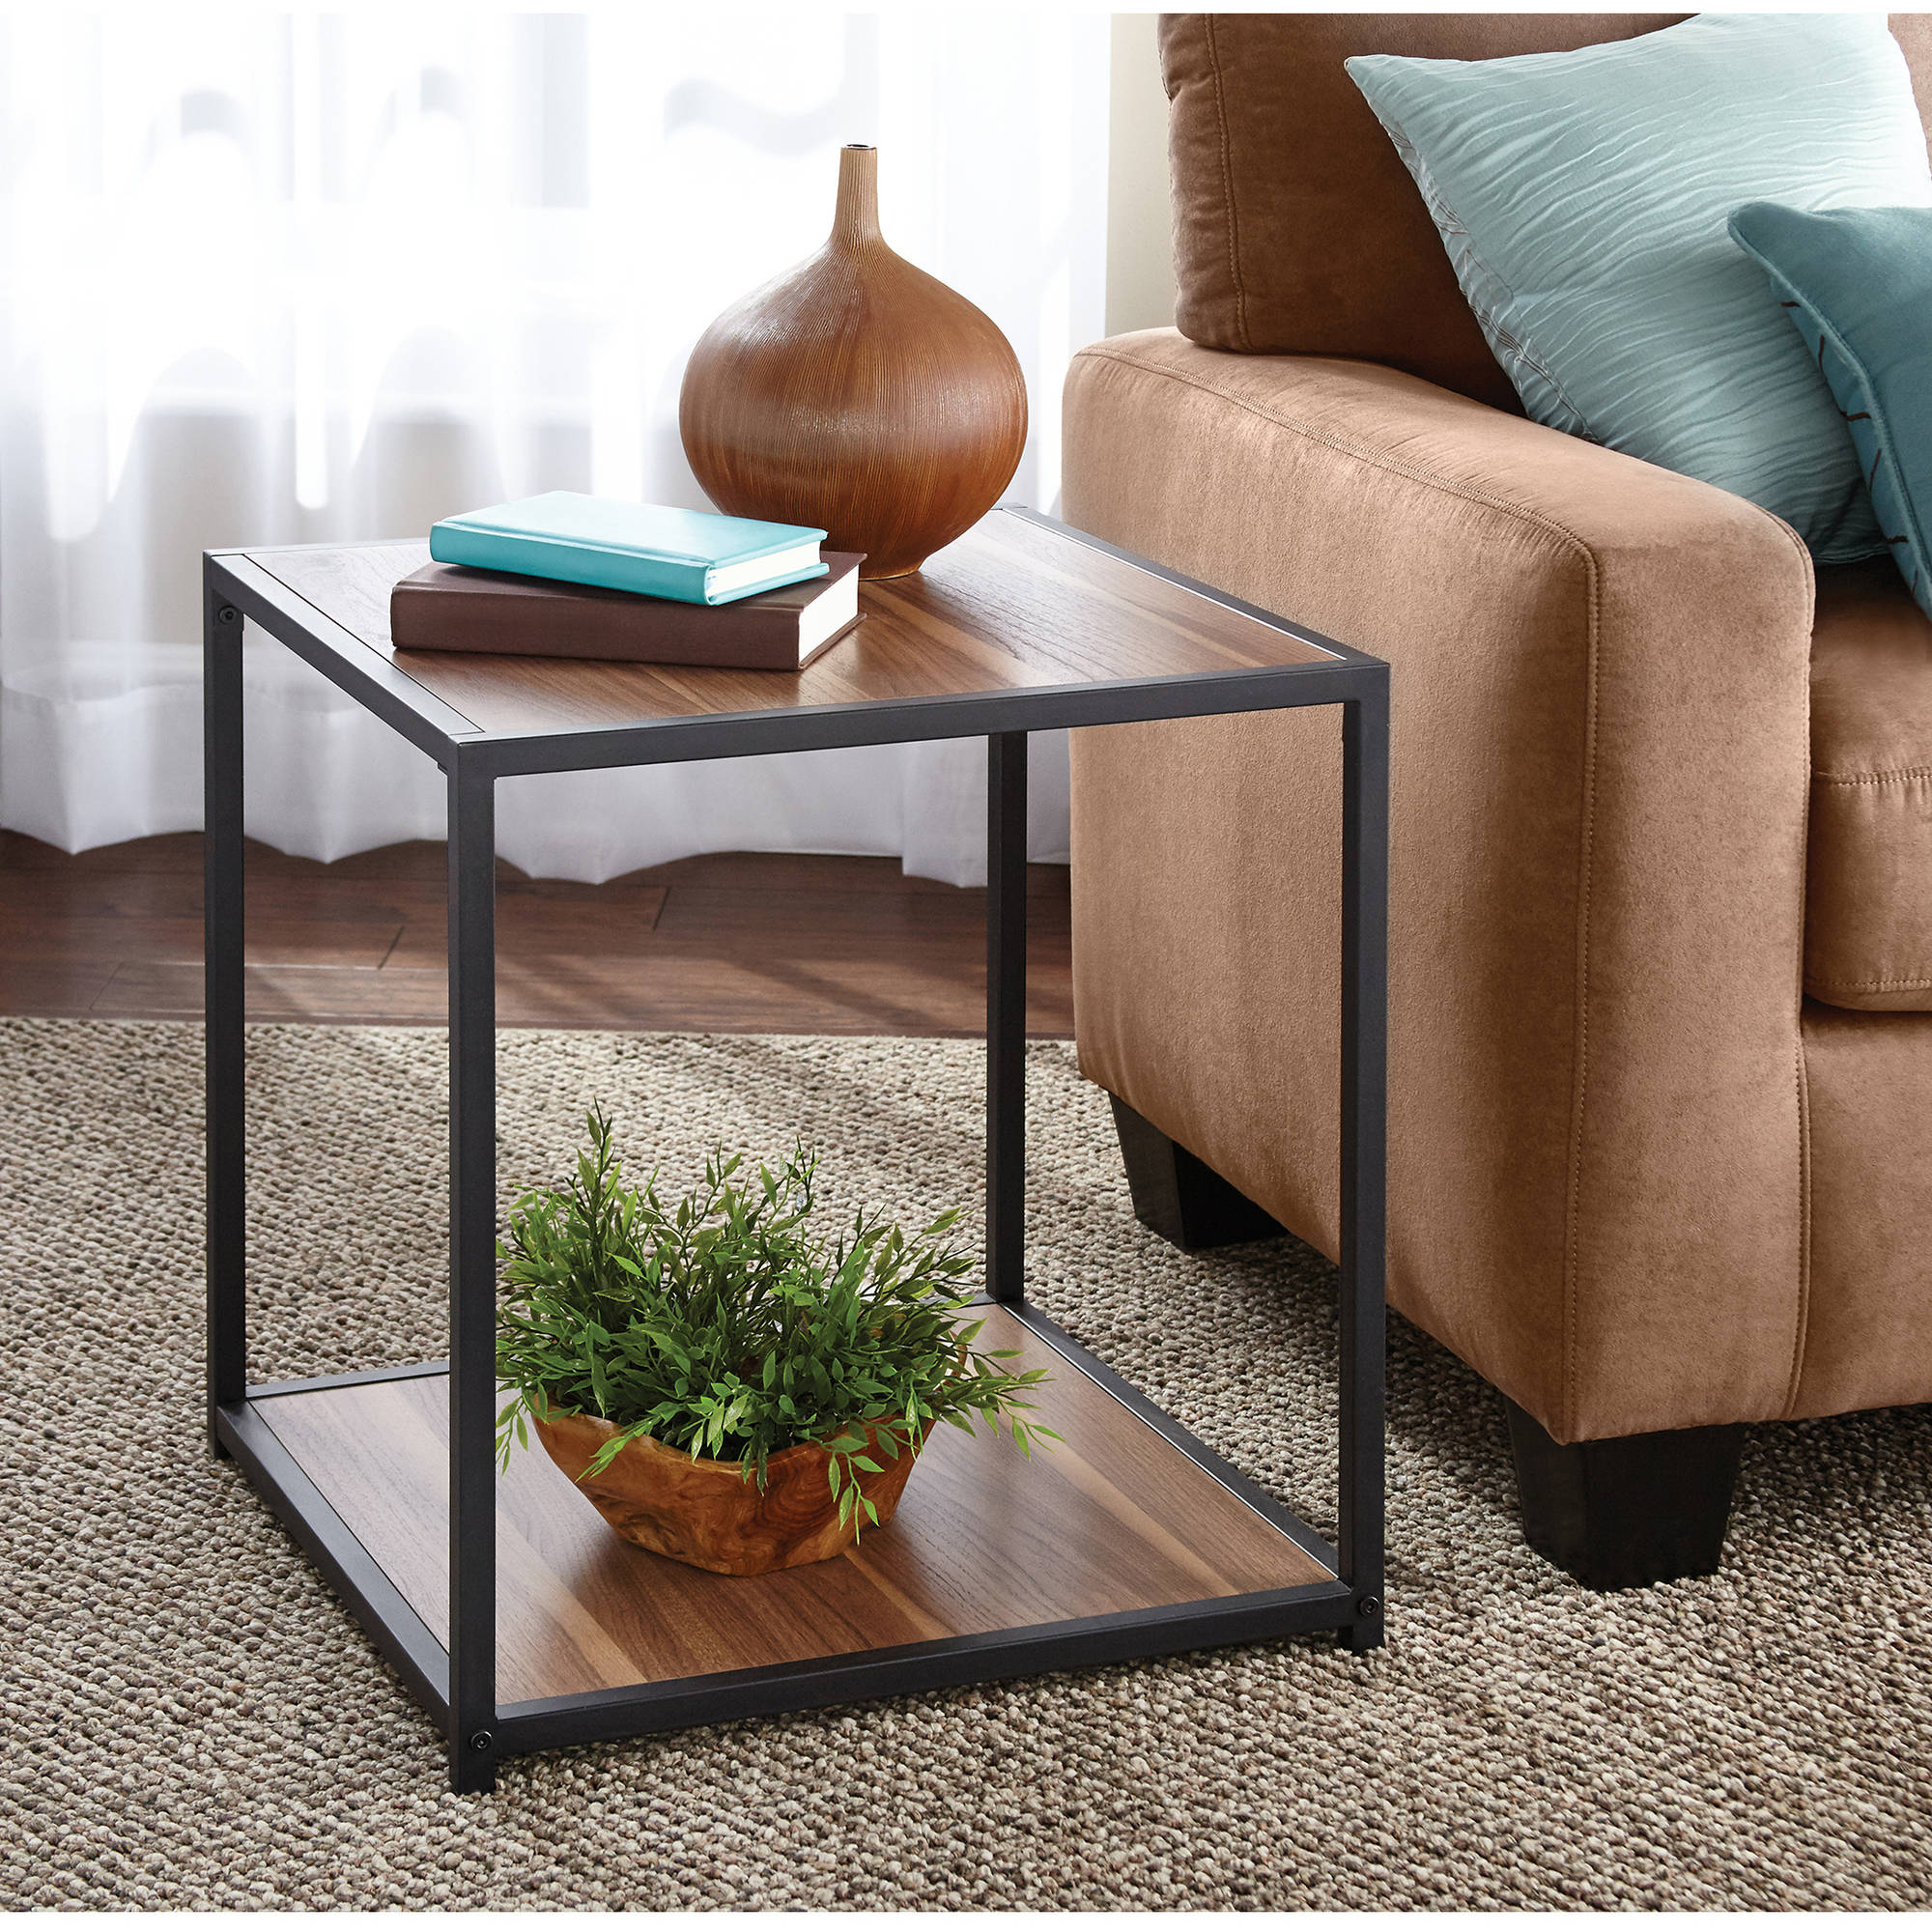 mainstays metro side table multiple finishes accent under value furniture bathroom wardrobe round telephone pier one tures tiffany style lamp with lighted base rose gold end